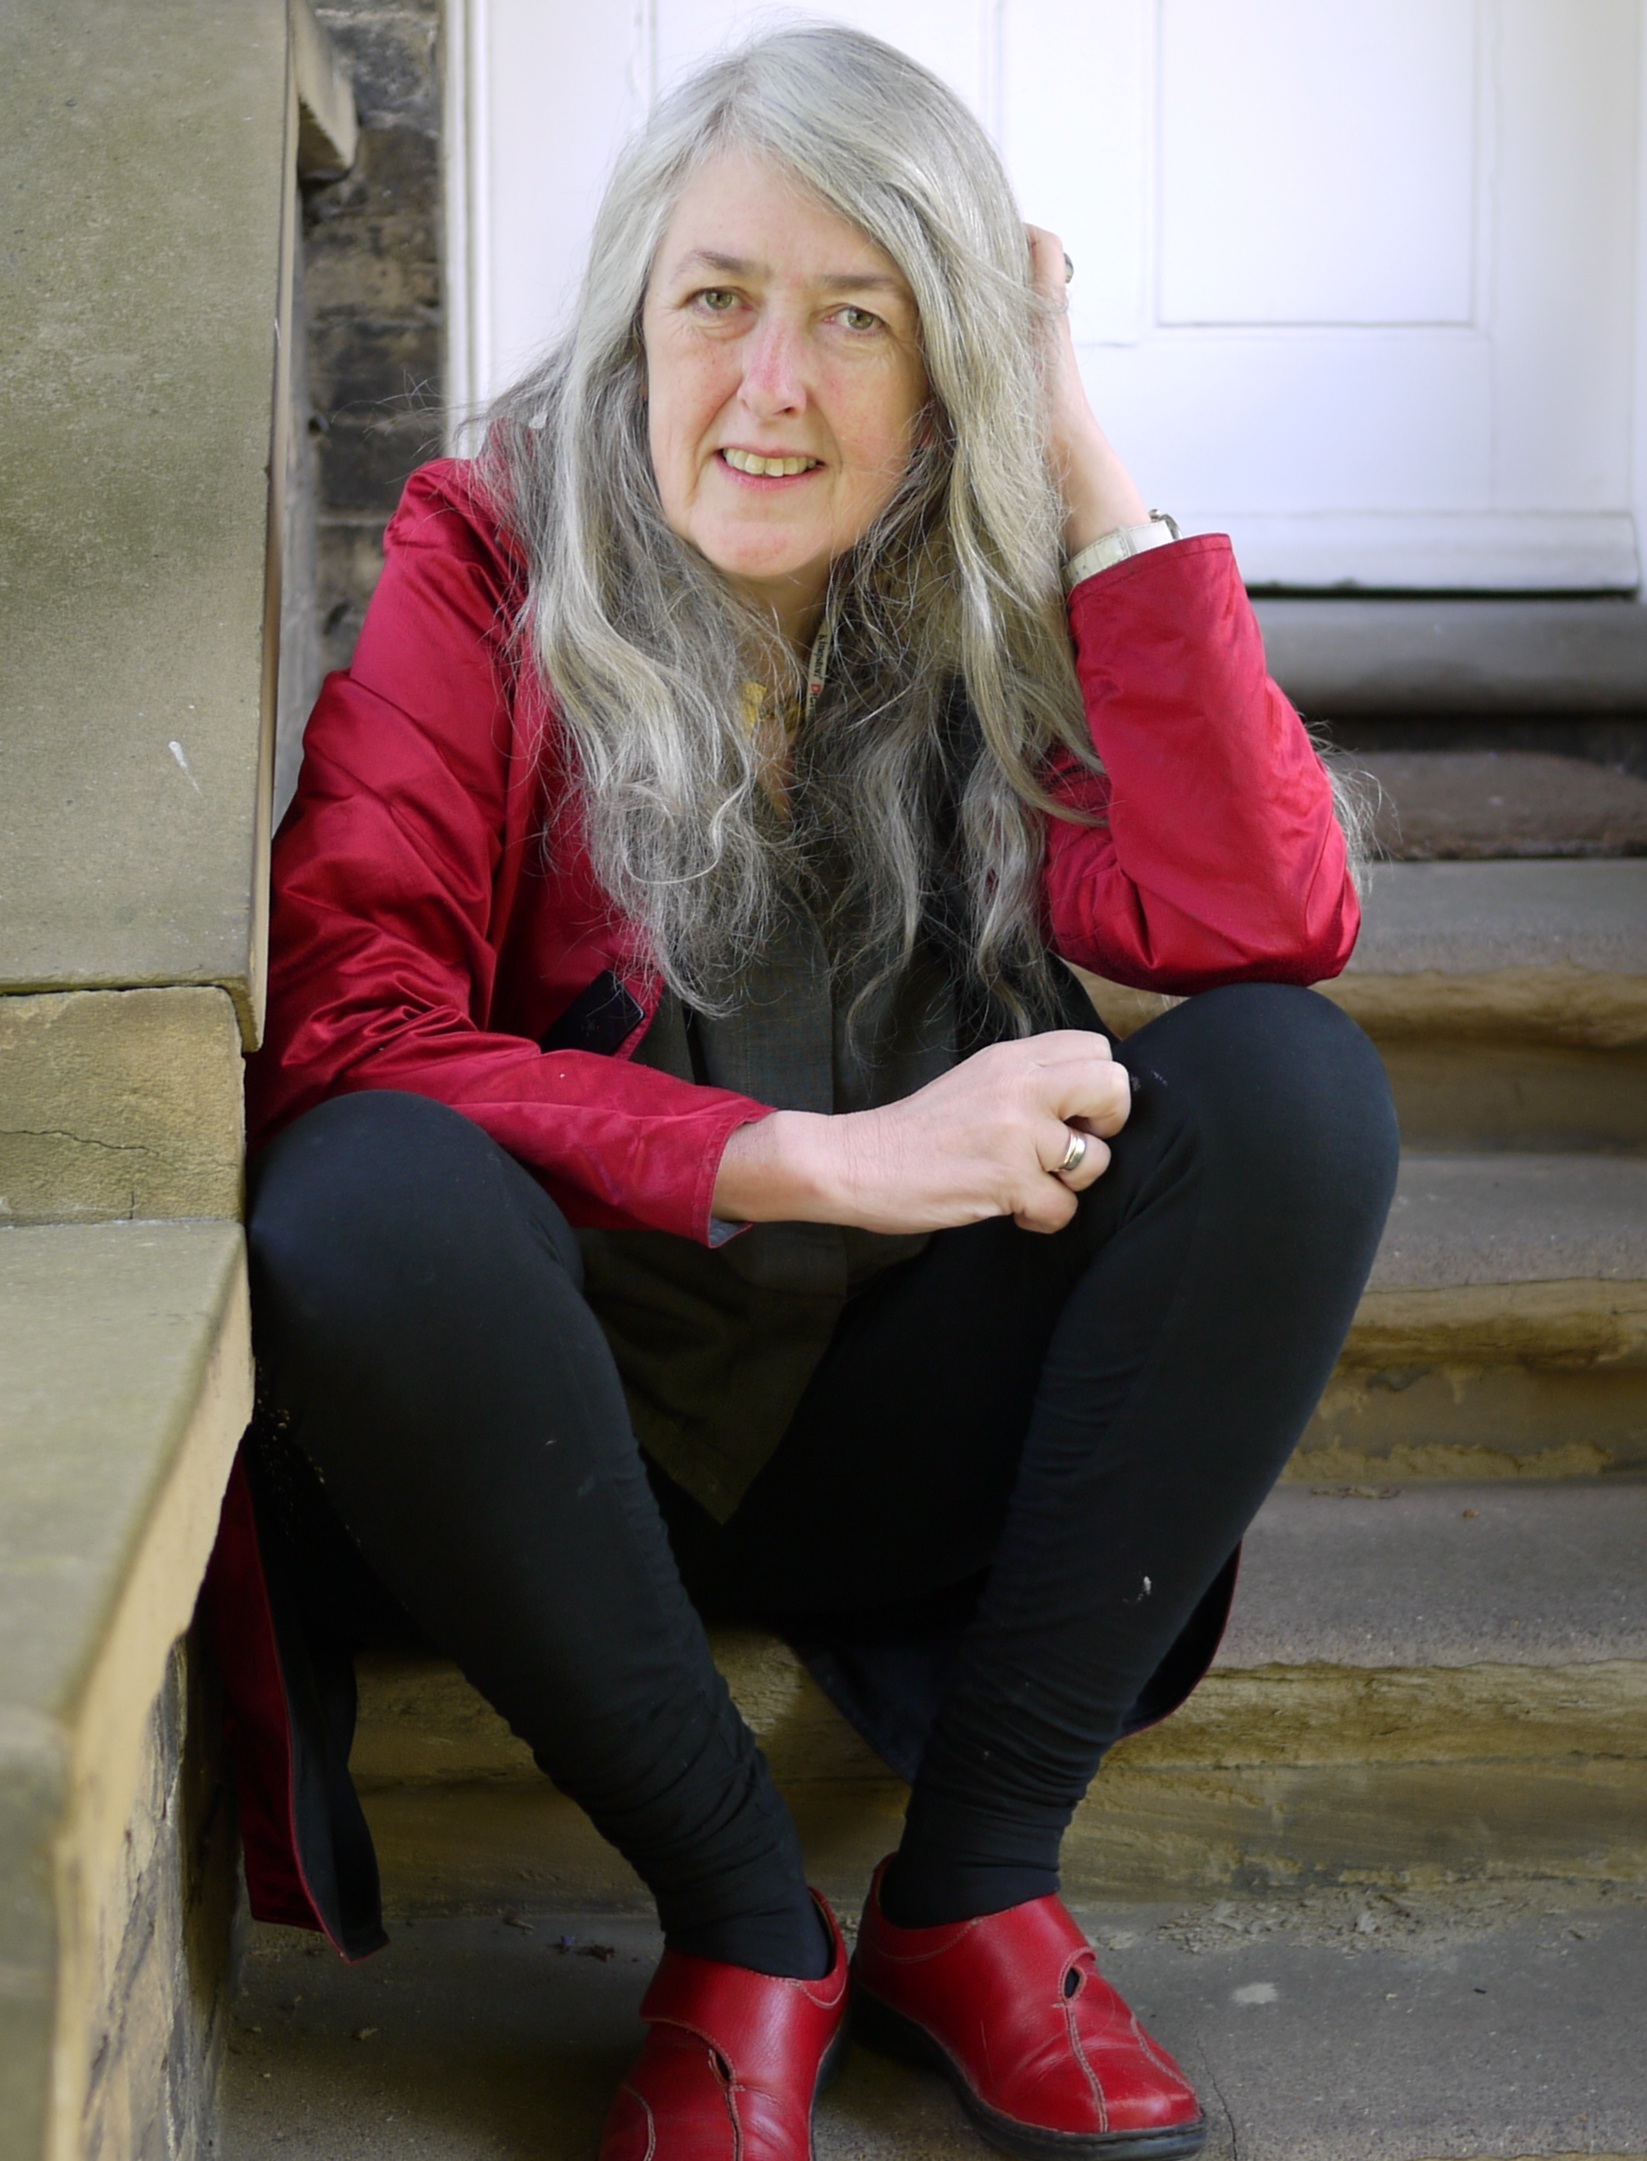 I can't understand why so many women are desperate to make themselves look younger - Dame Winifred Mary Beard, DBE, FSA, FBA, British scholar and professor of Classics at the University of Cambridge